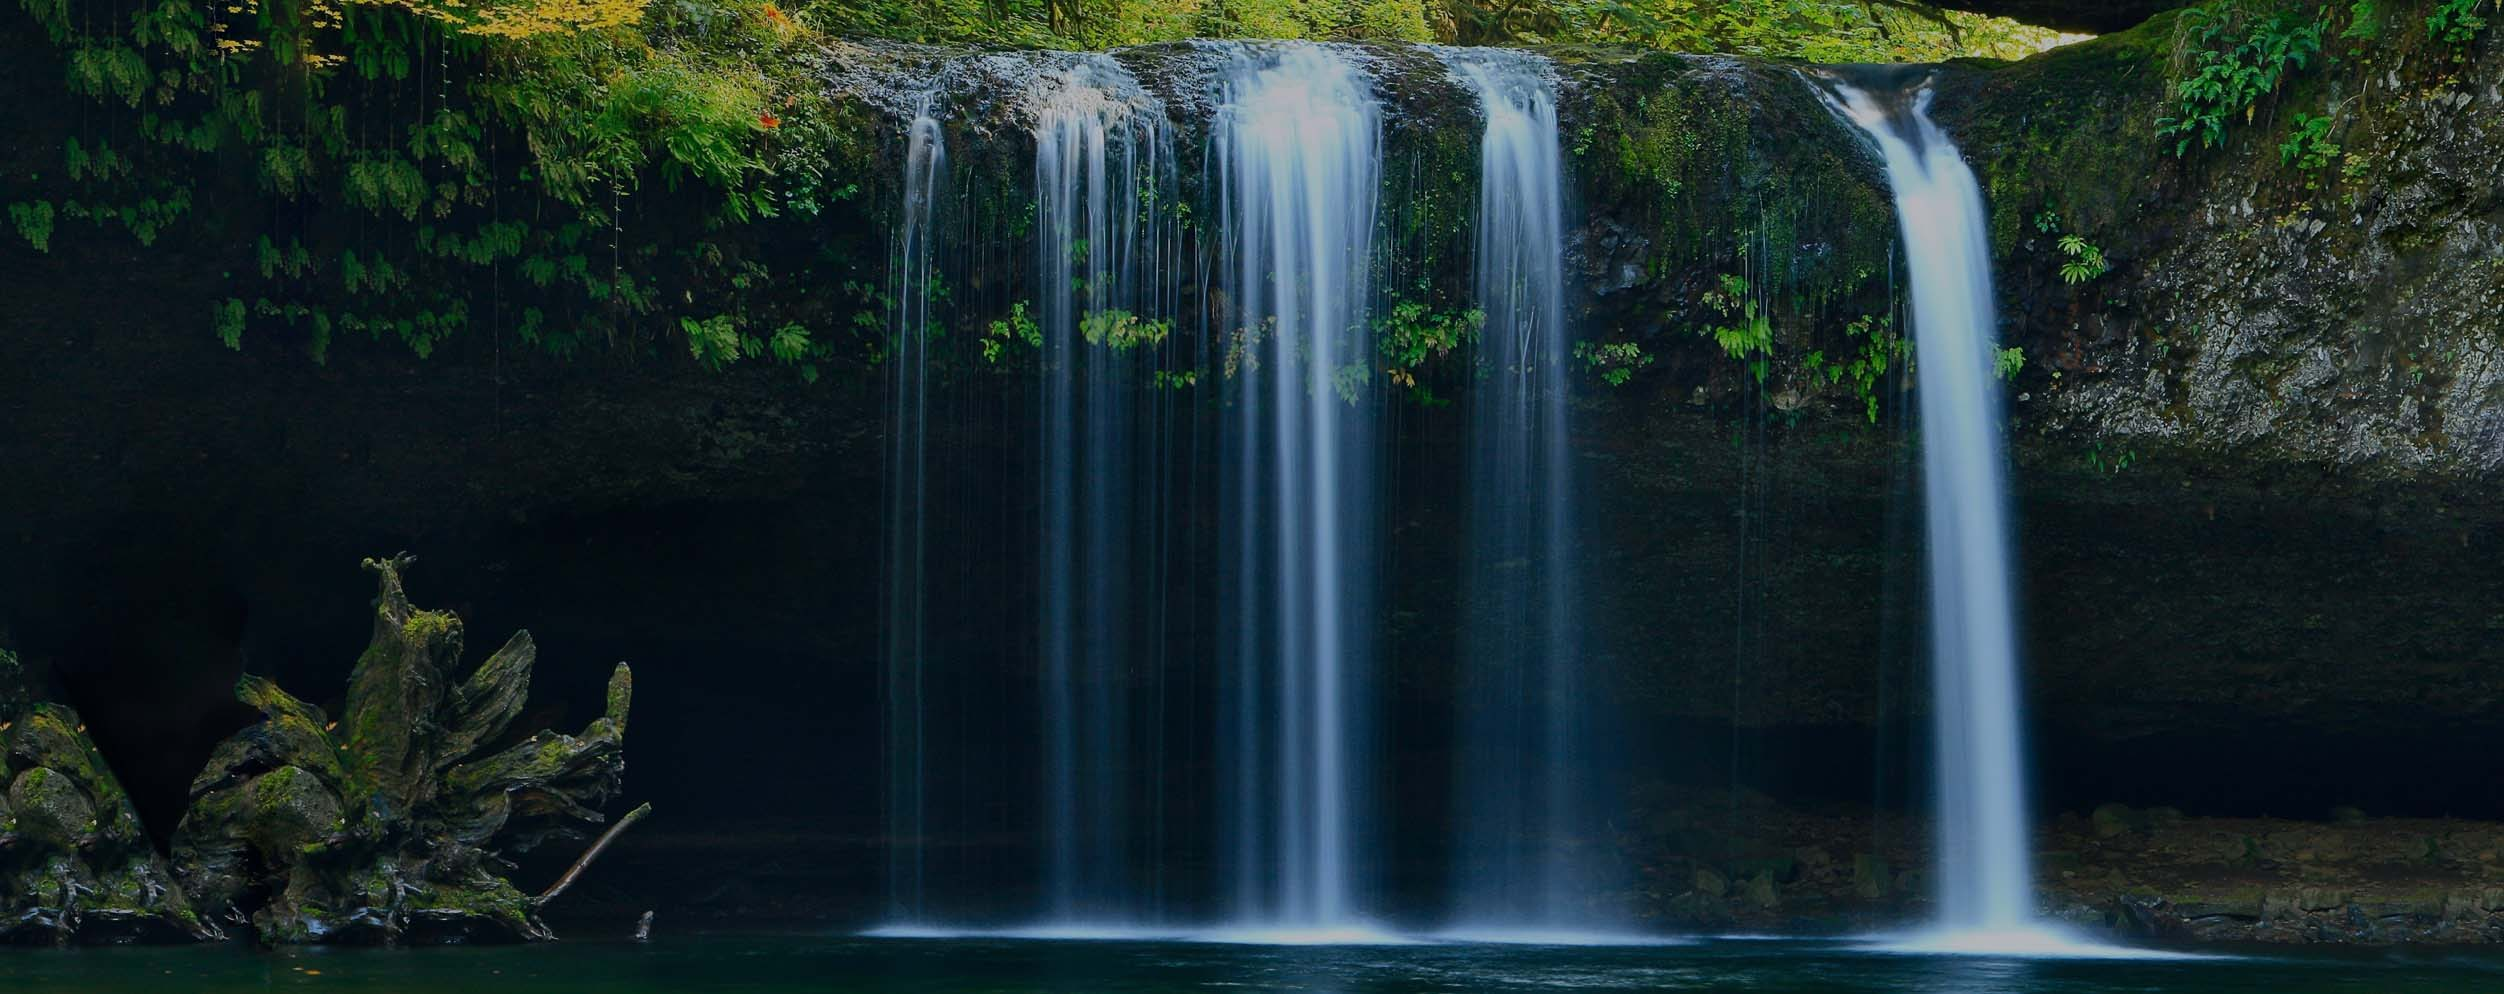 Waterfall photography